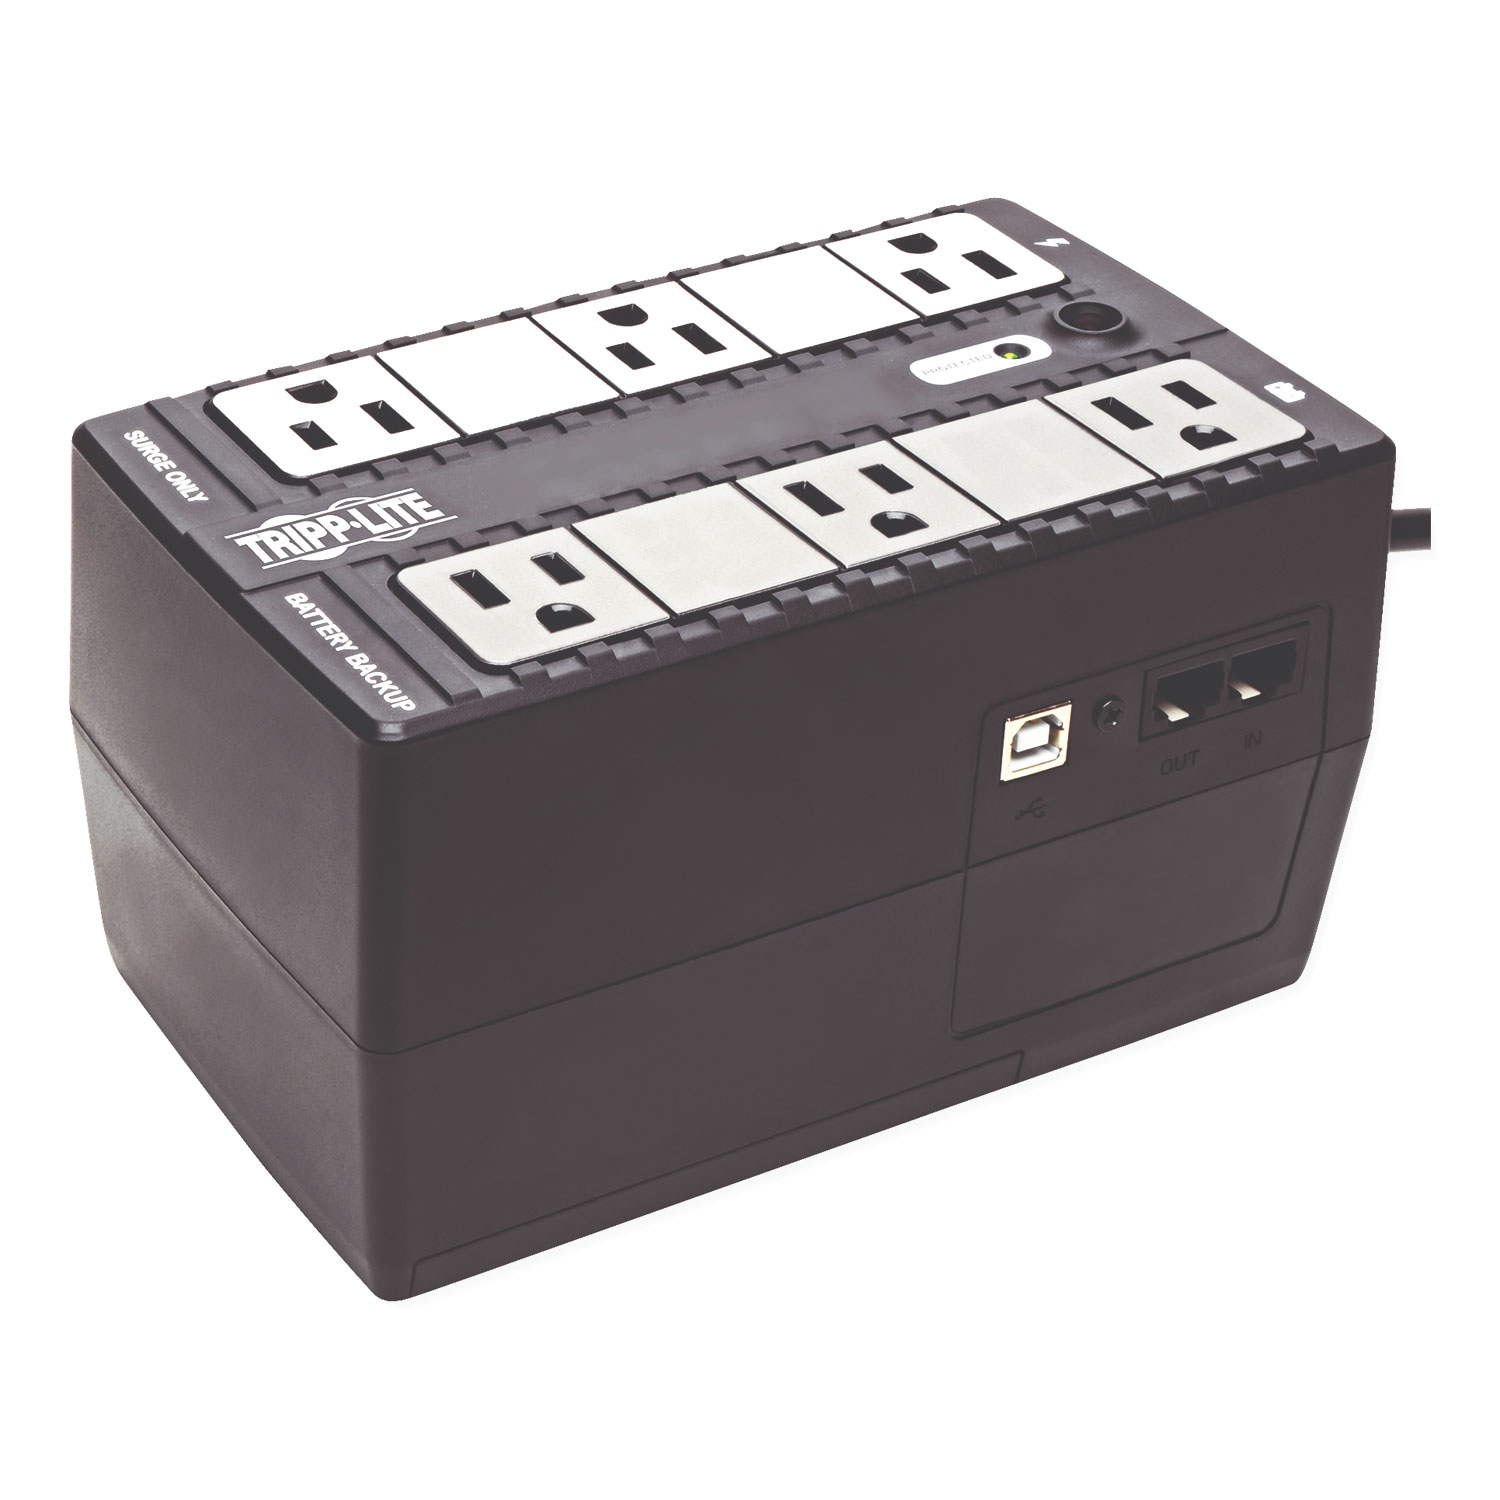 Internet Office Ultra-Compact Desktop Standby UPS, USB, 6 Outlets, 350 VA, 380 J